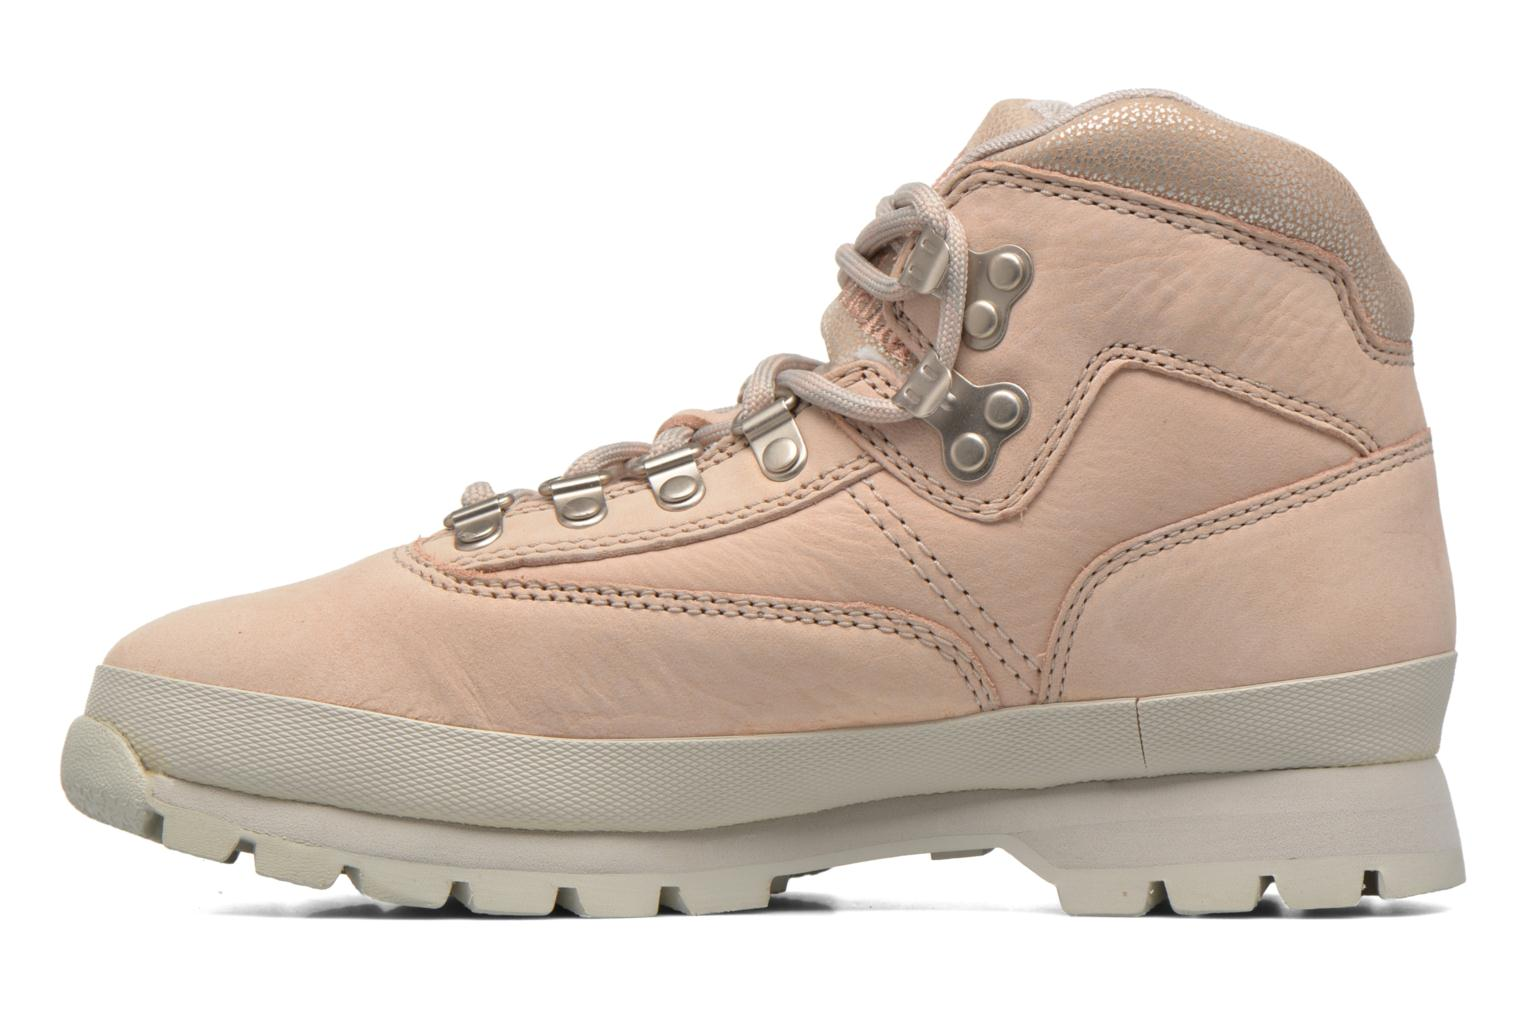 Chaussures à lacets Timberland Euro Hiker Leather Rose vue face